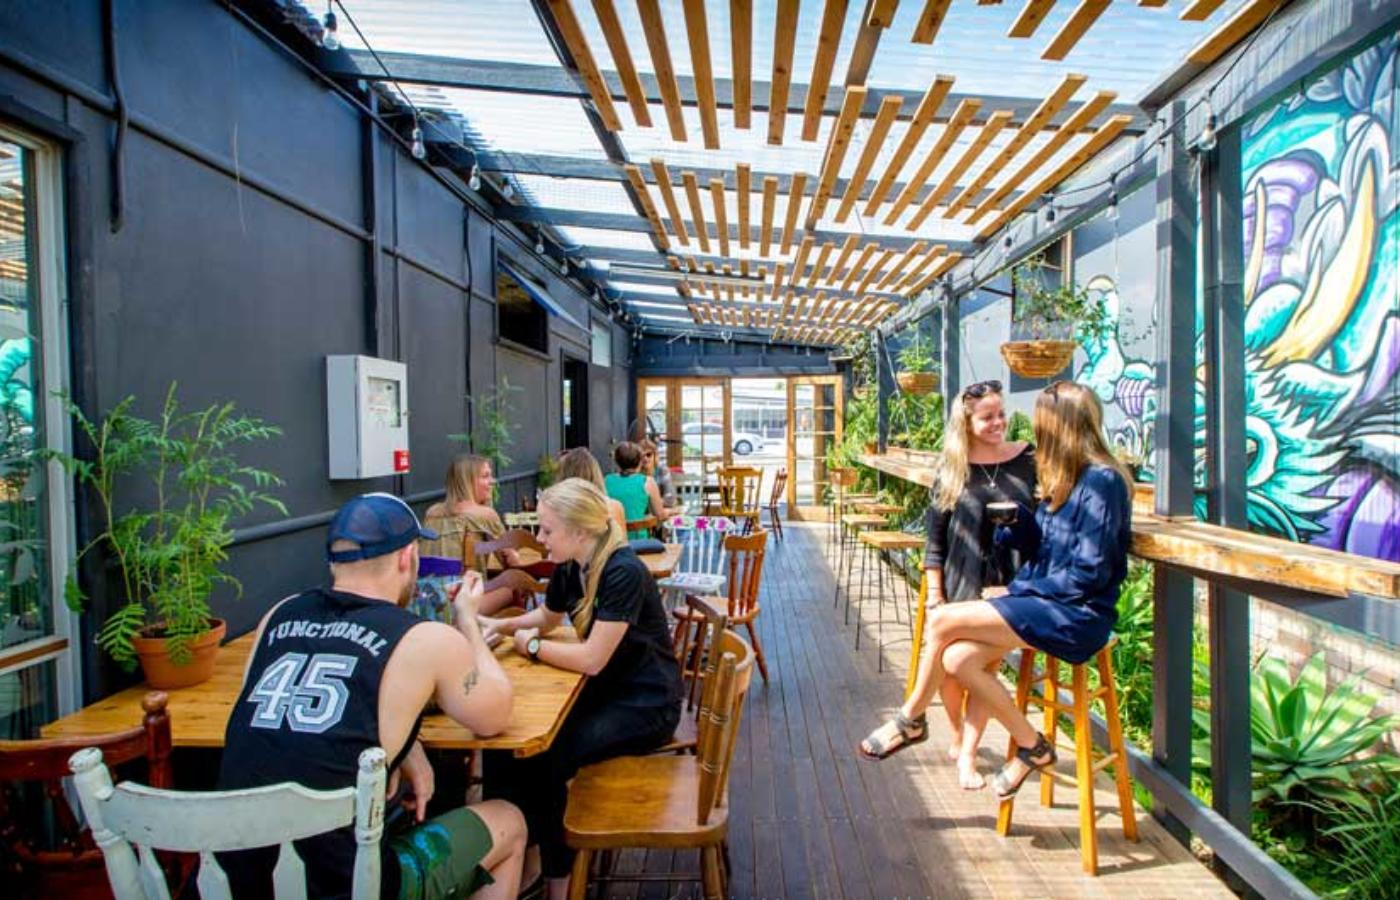 Dine Outdoors At Social Grounds Cafe By Lindsay Moller